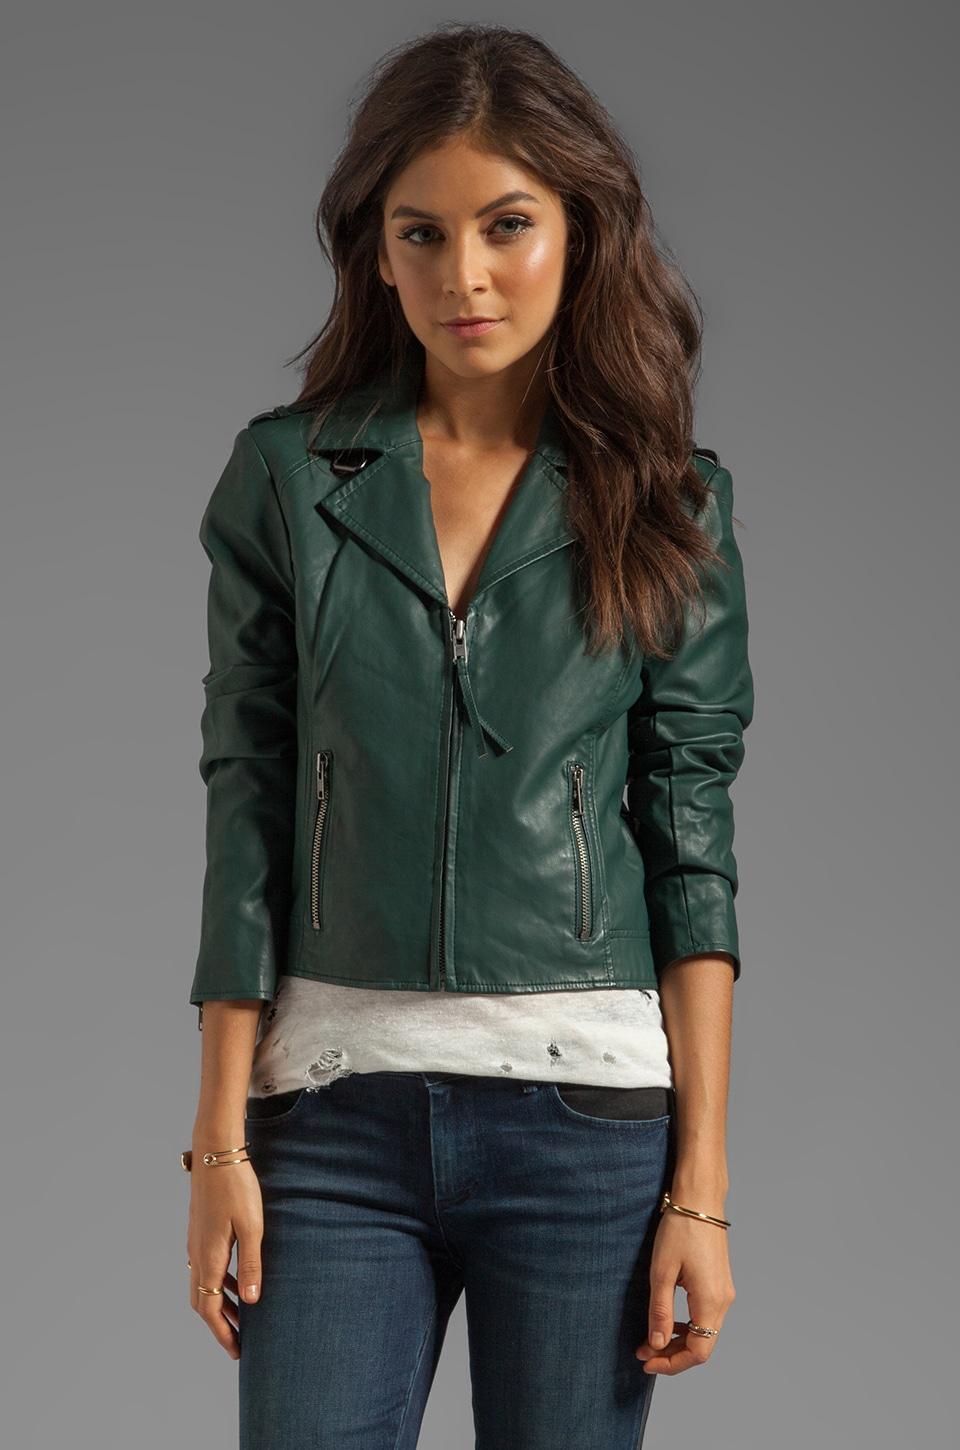 BB Dakota Missy PU Moto Jacket in Dark Green | REVOLVE